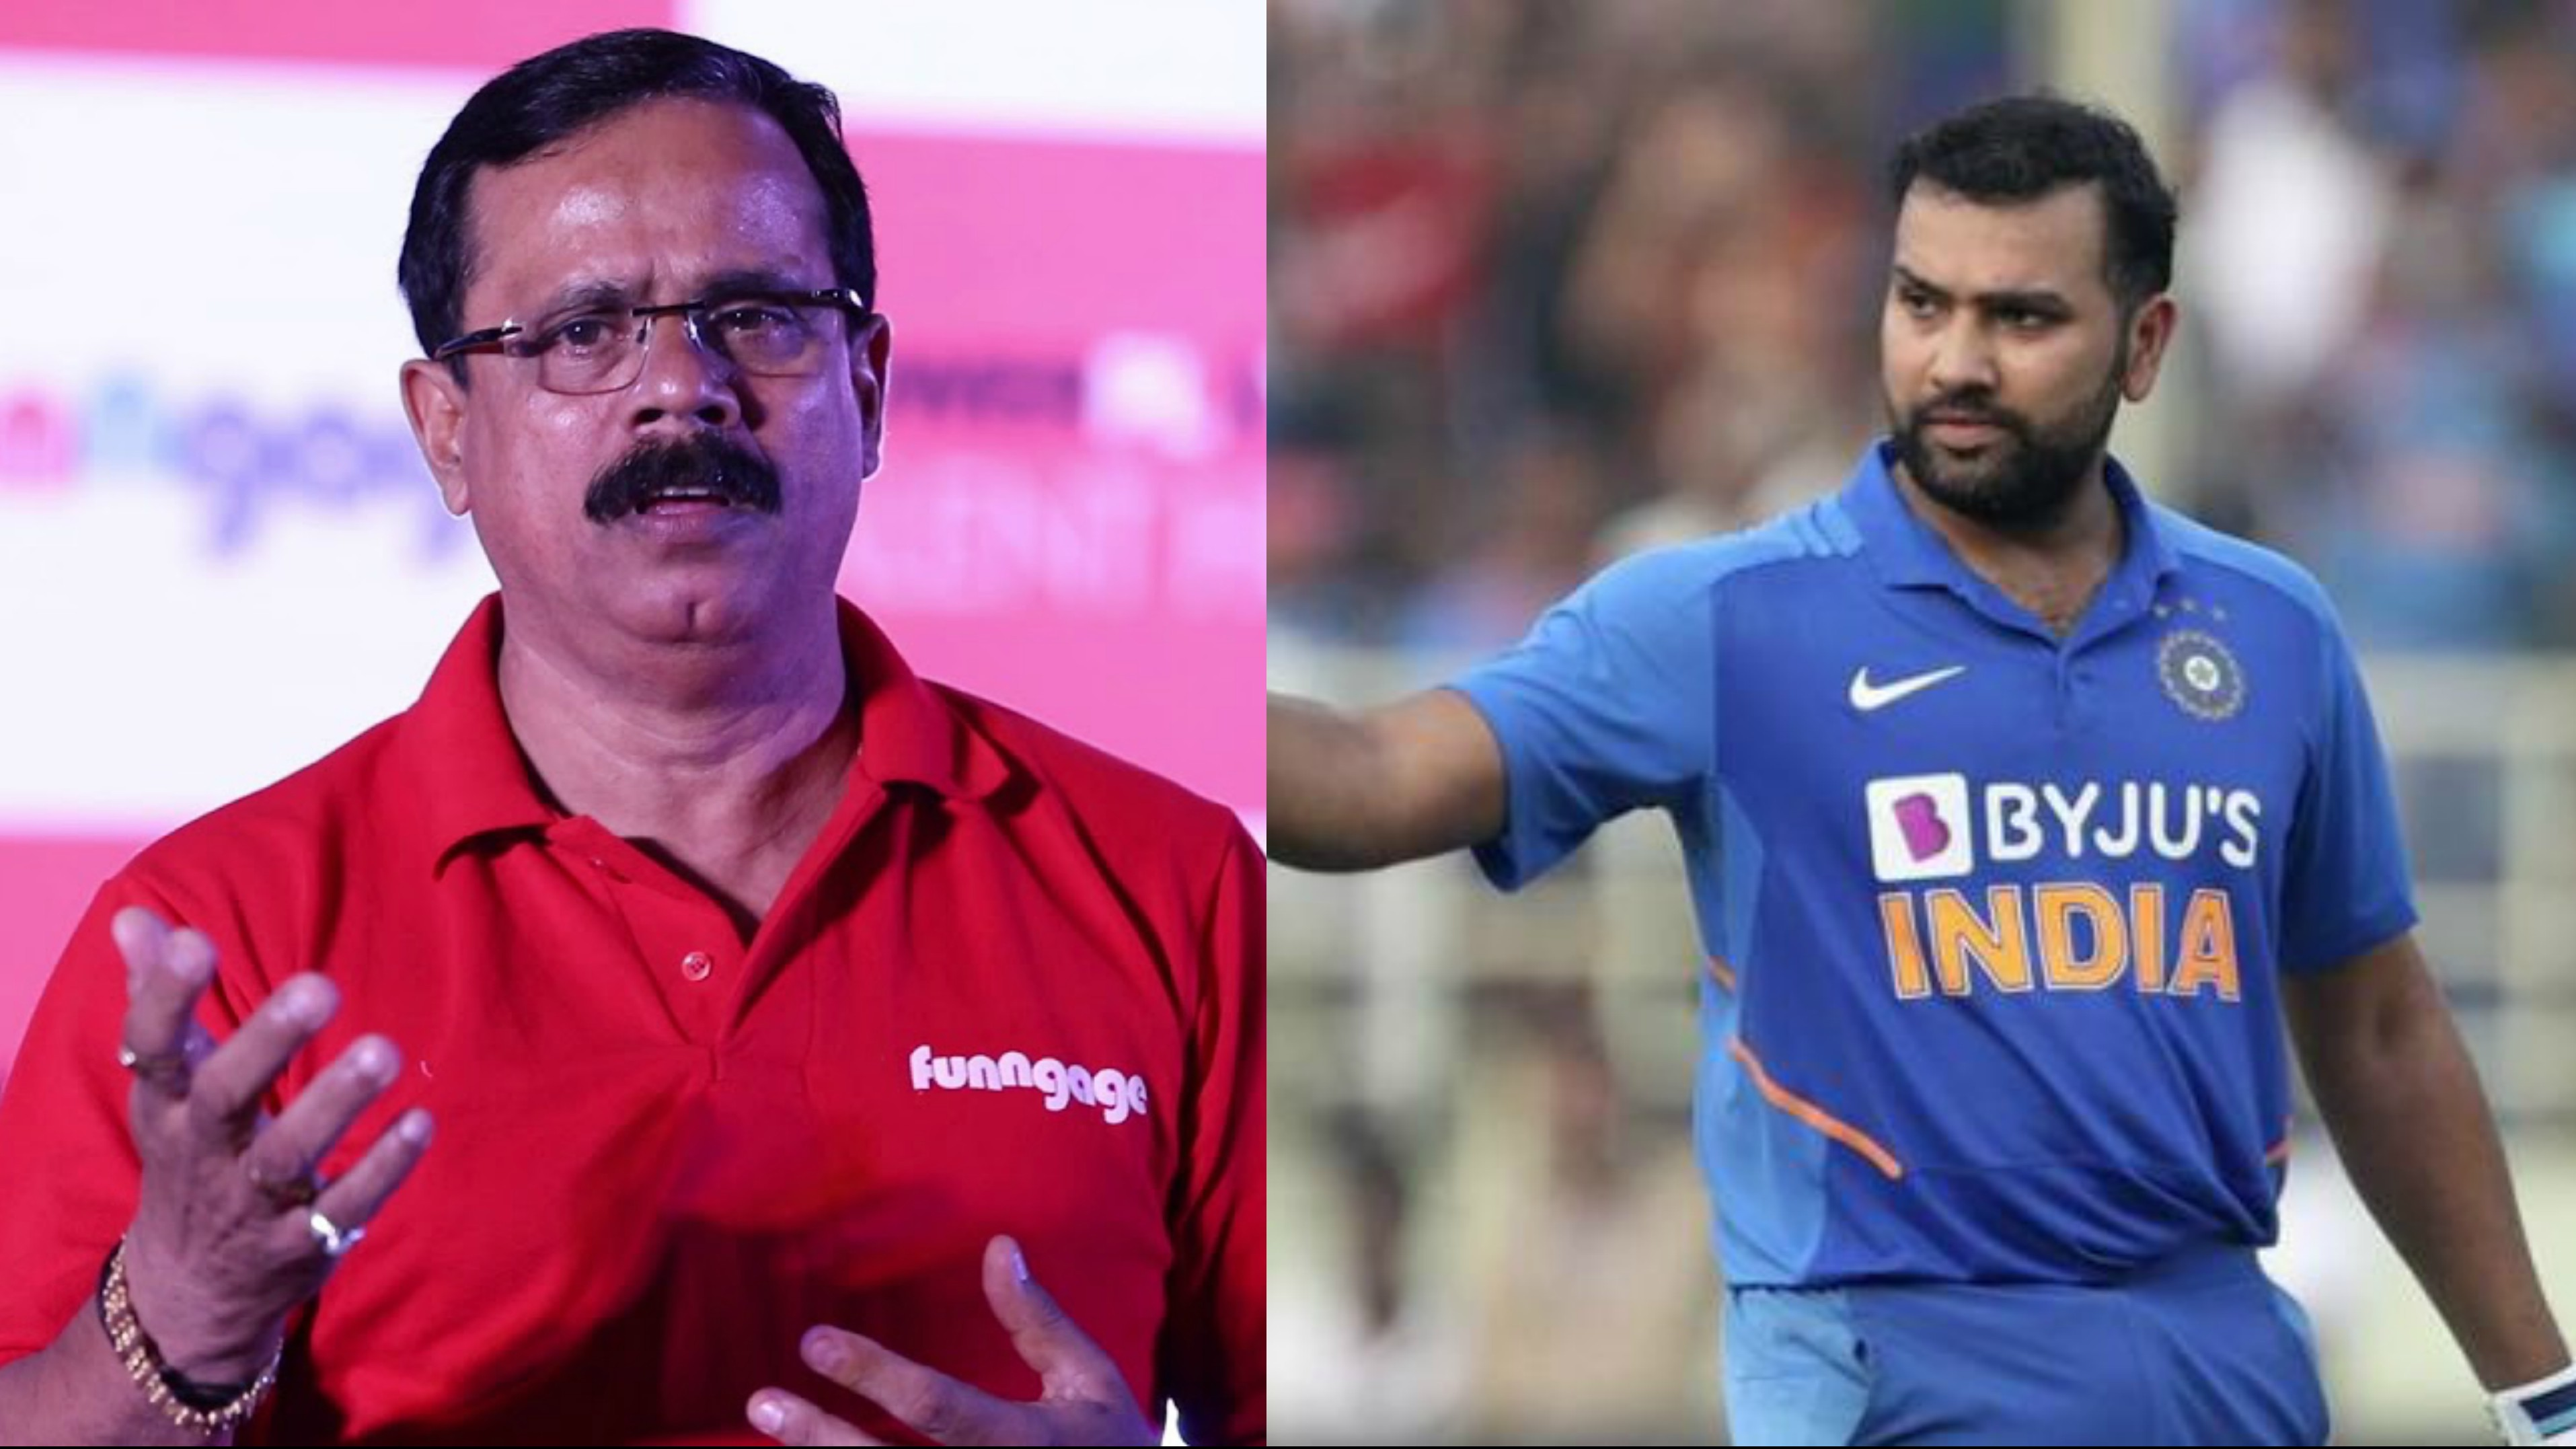 Rohit Sharma's childhood coach Dinesh Lad expects him to win 2023 World Cup for India